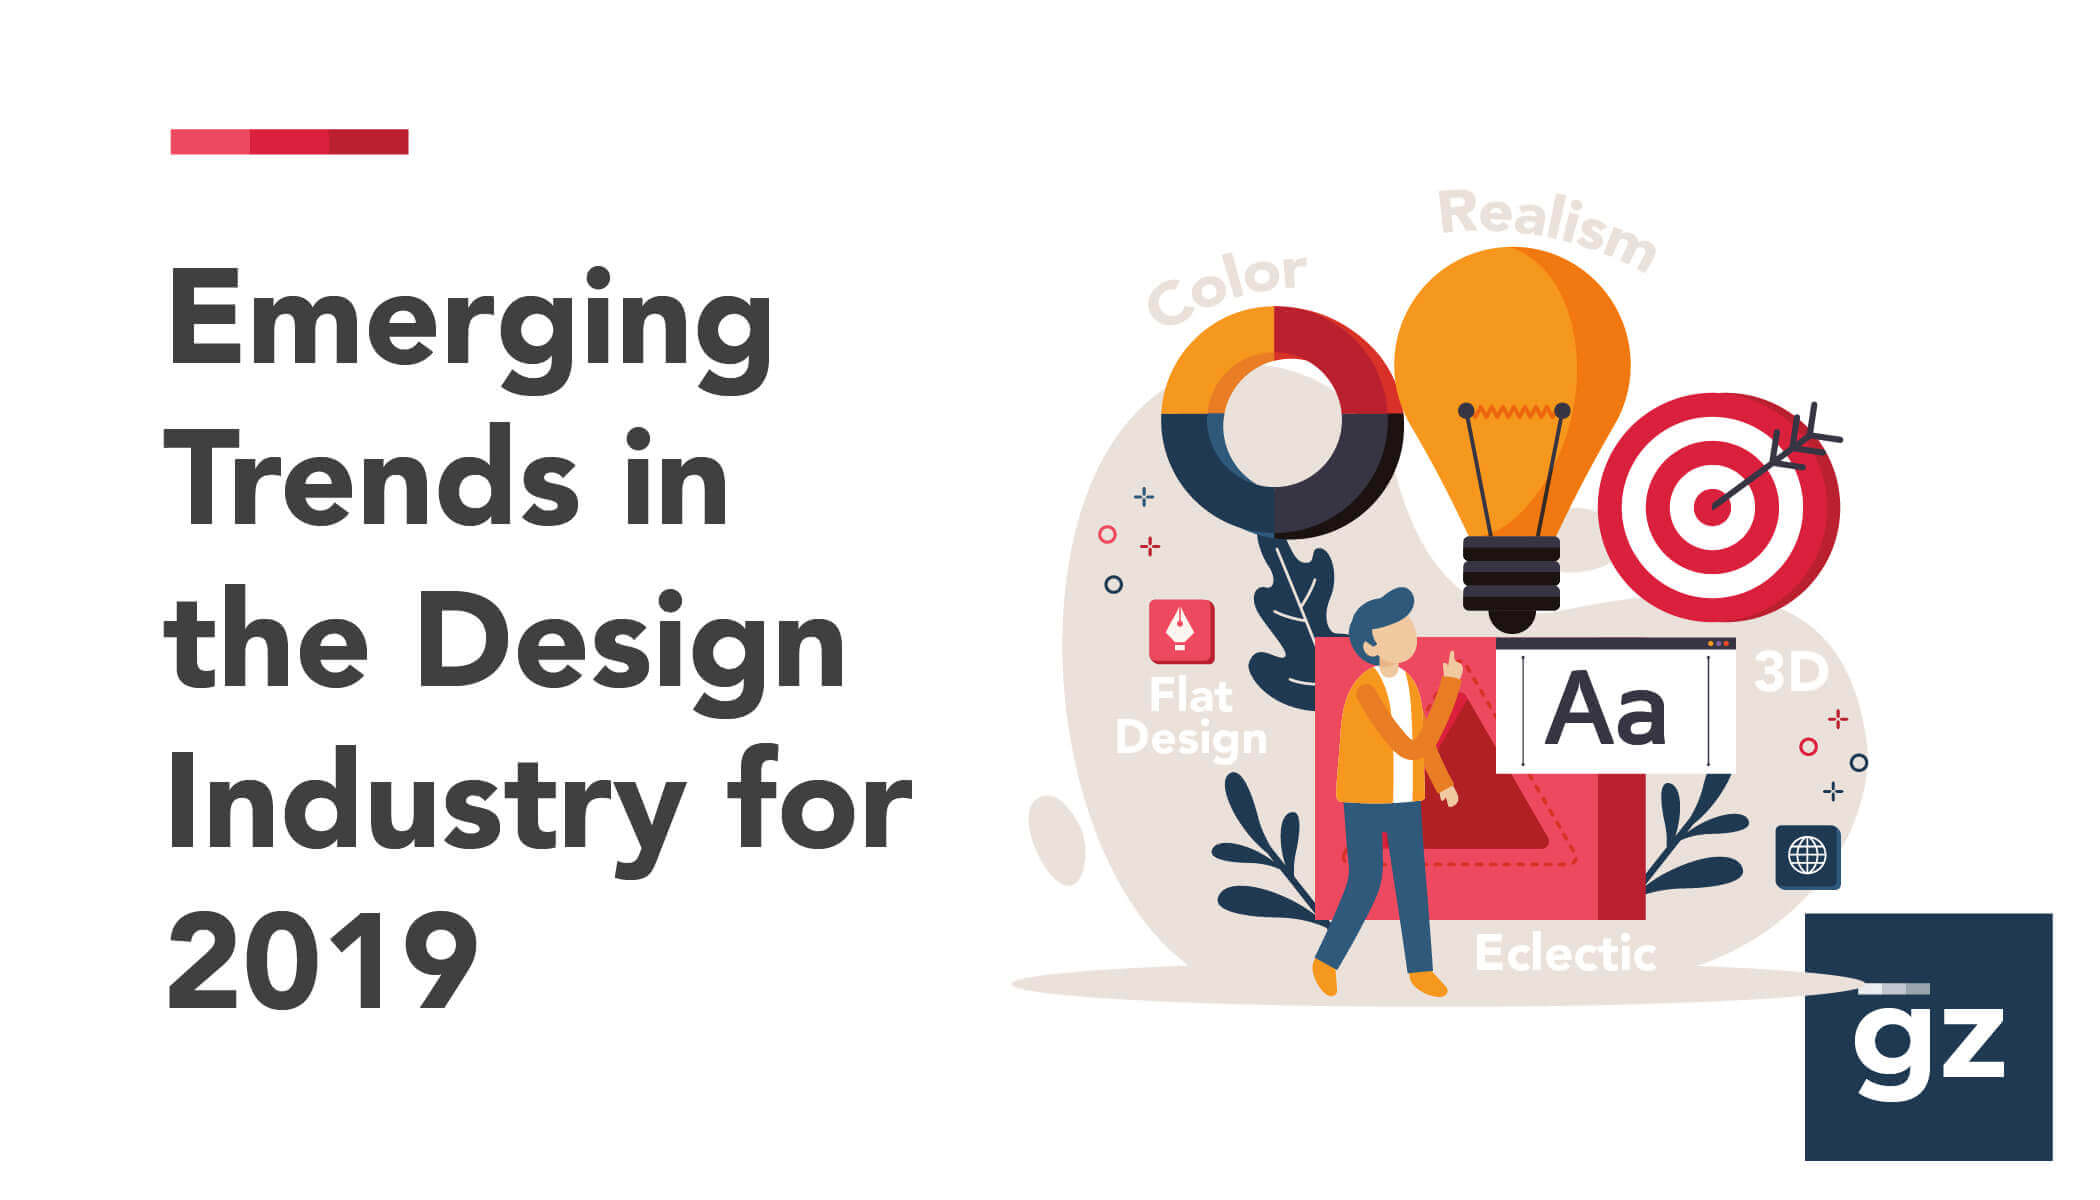 Emerging Trends in the Design Industry for 2019